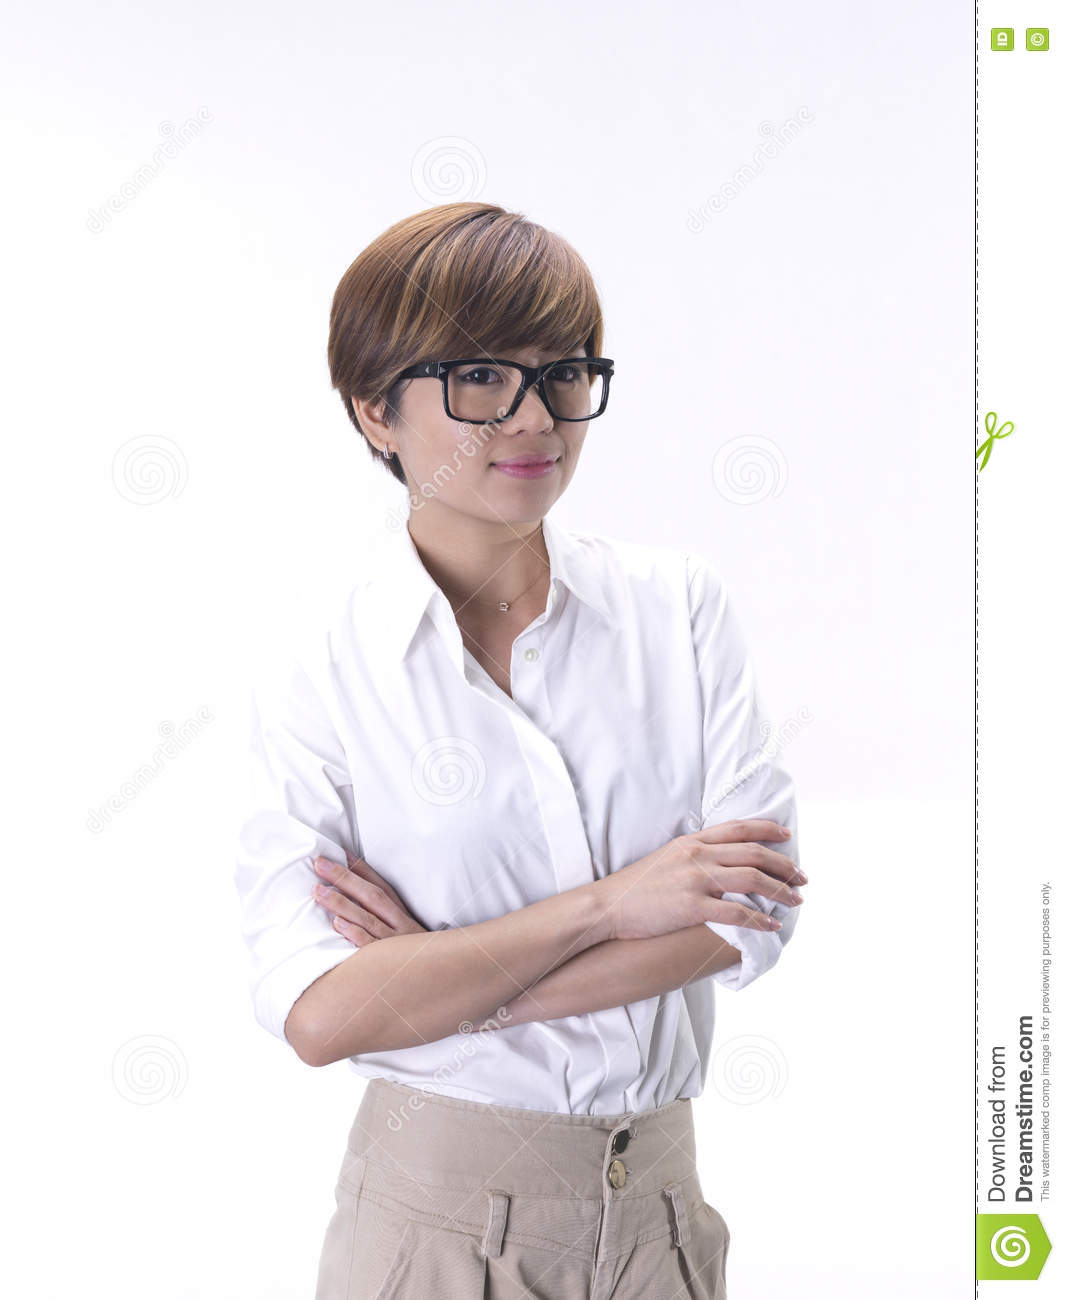 tomboy looking asian girl in smart outfit stock image image of